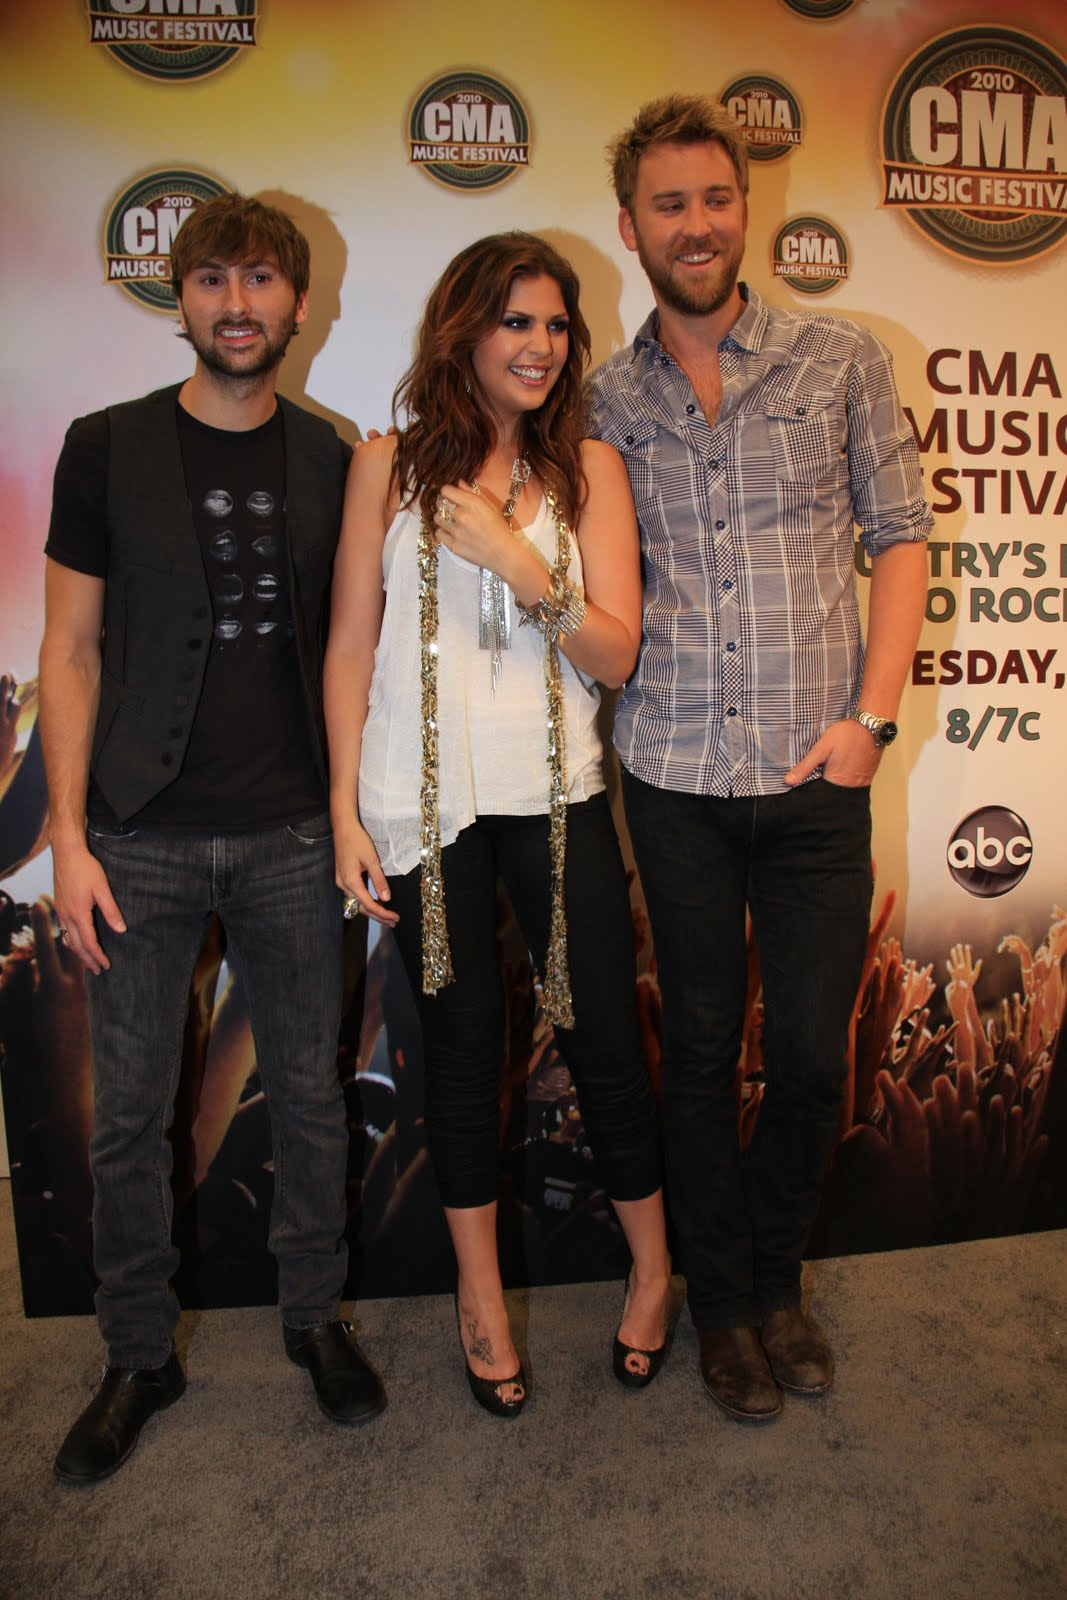 Moments by moser lady antebellum lp field press conference cma lady antebellum lp field press conference cma music festival 2010 m4hsunfo